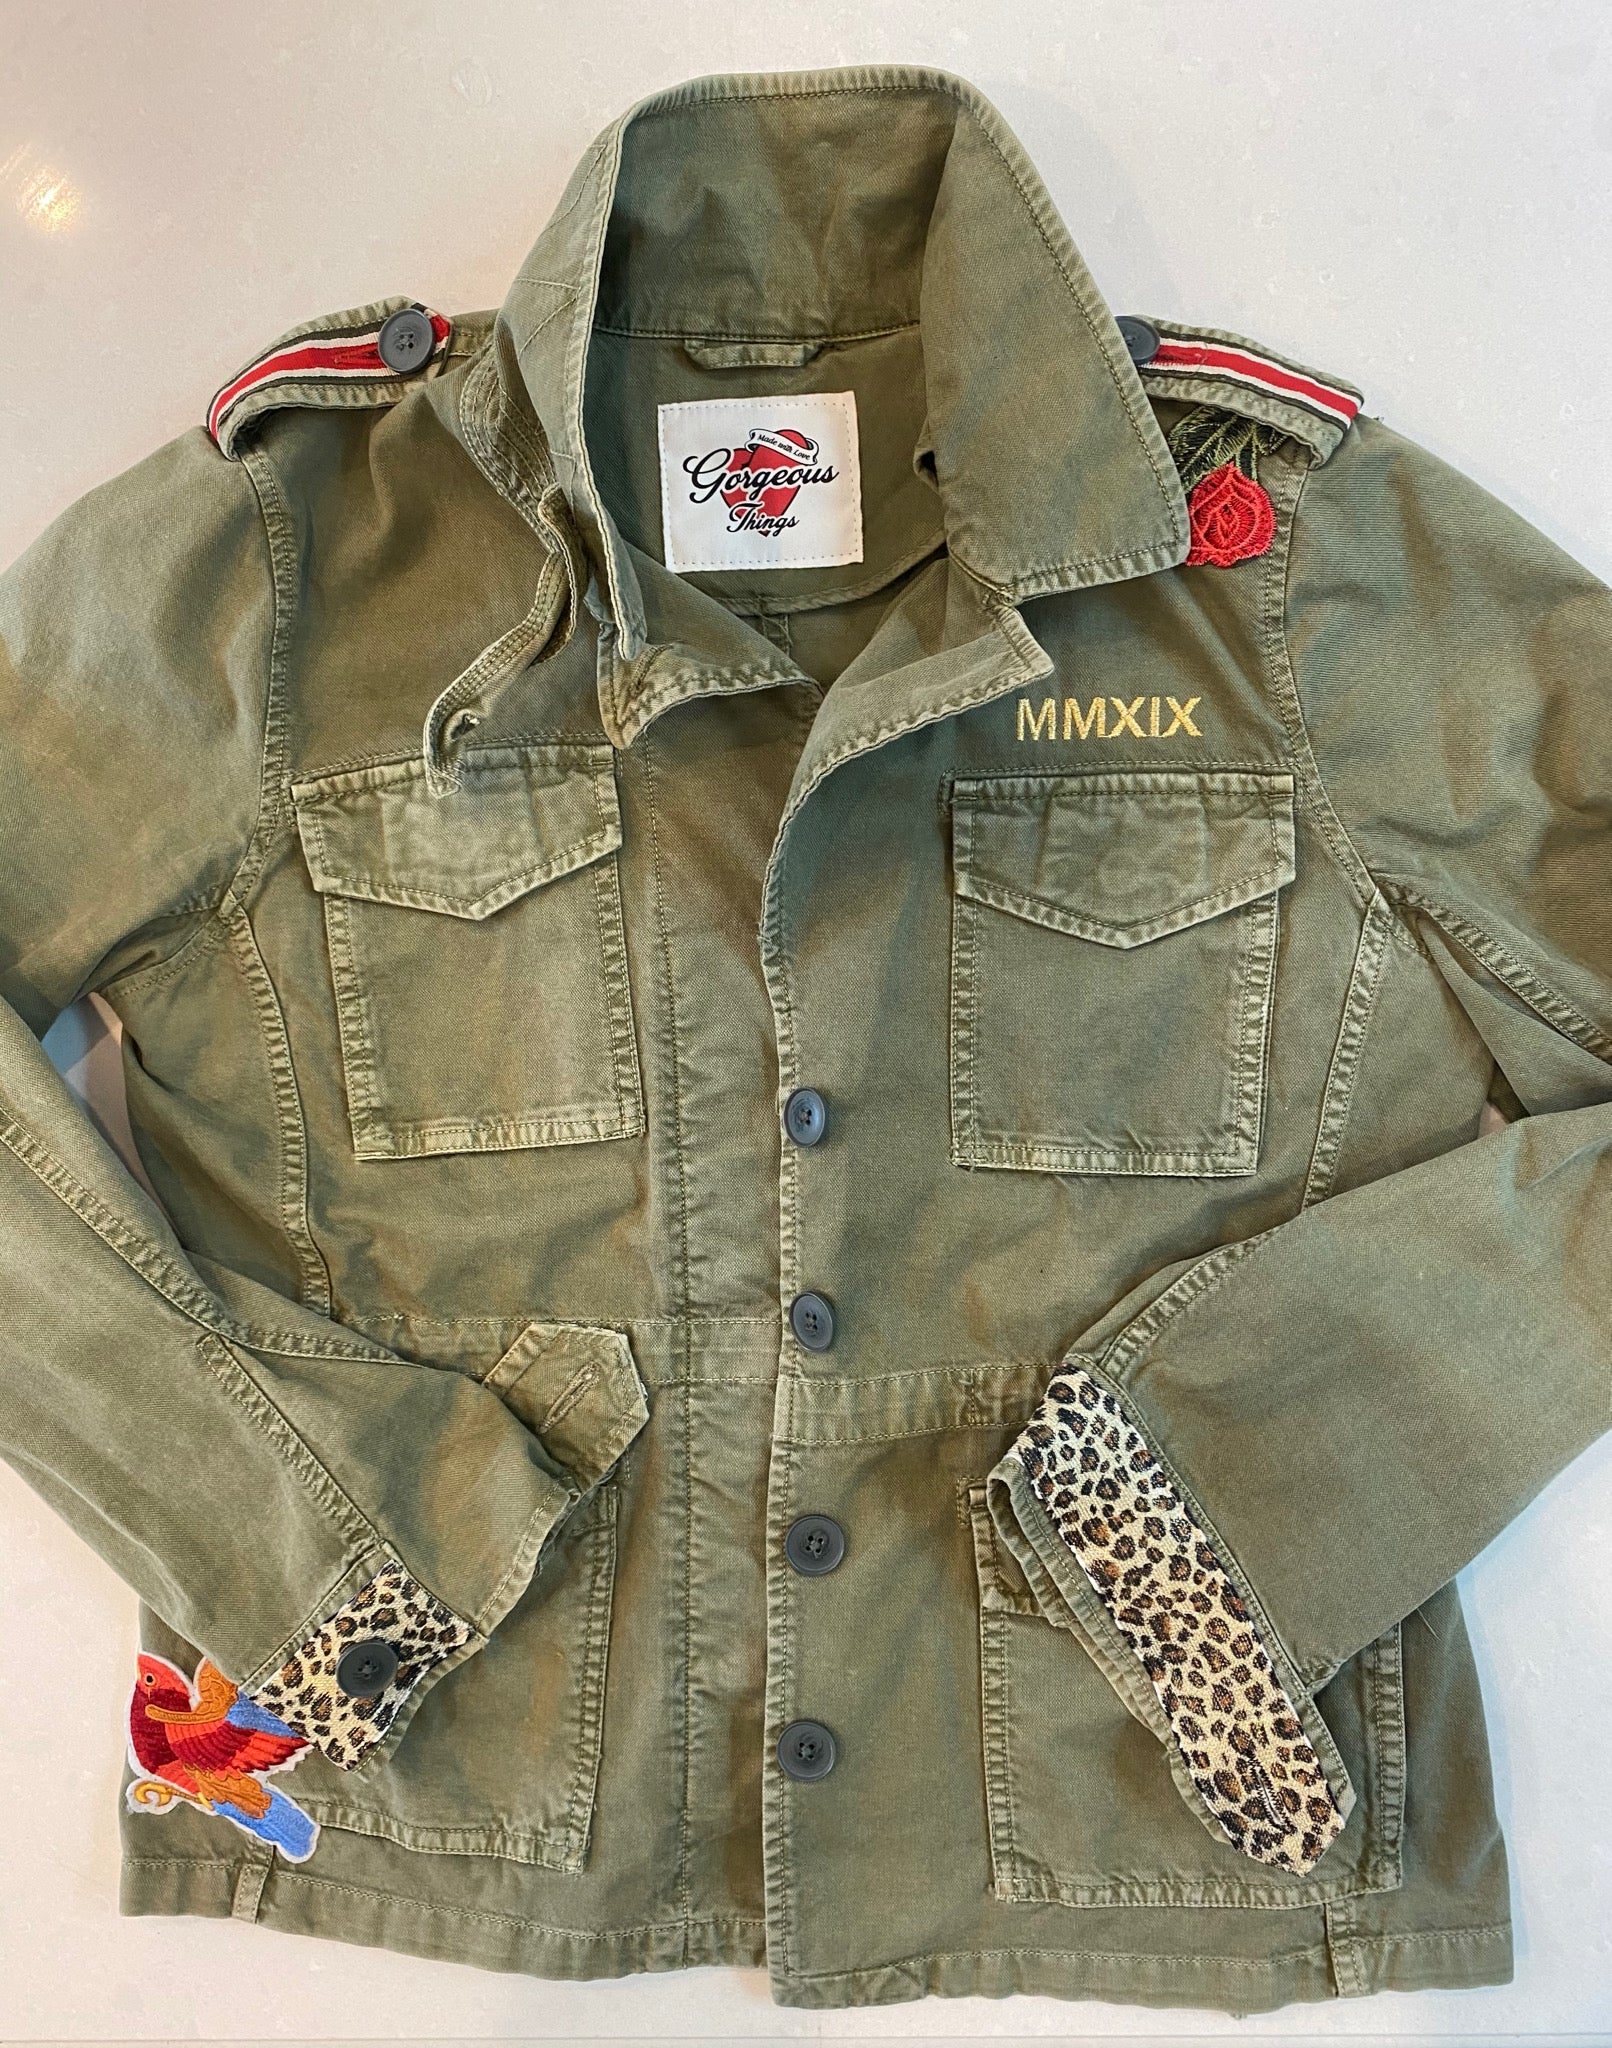 The Fashionista Leopard Army Jacket